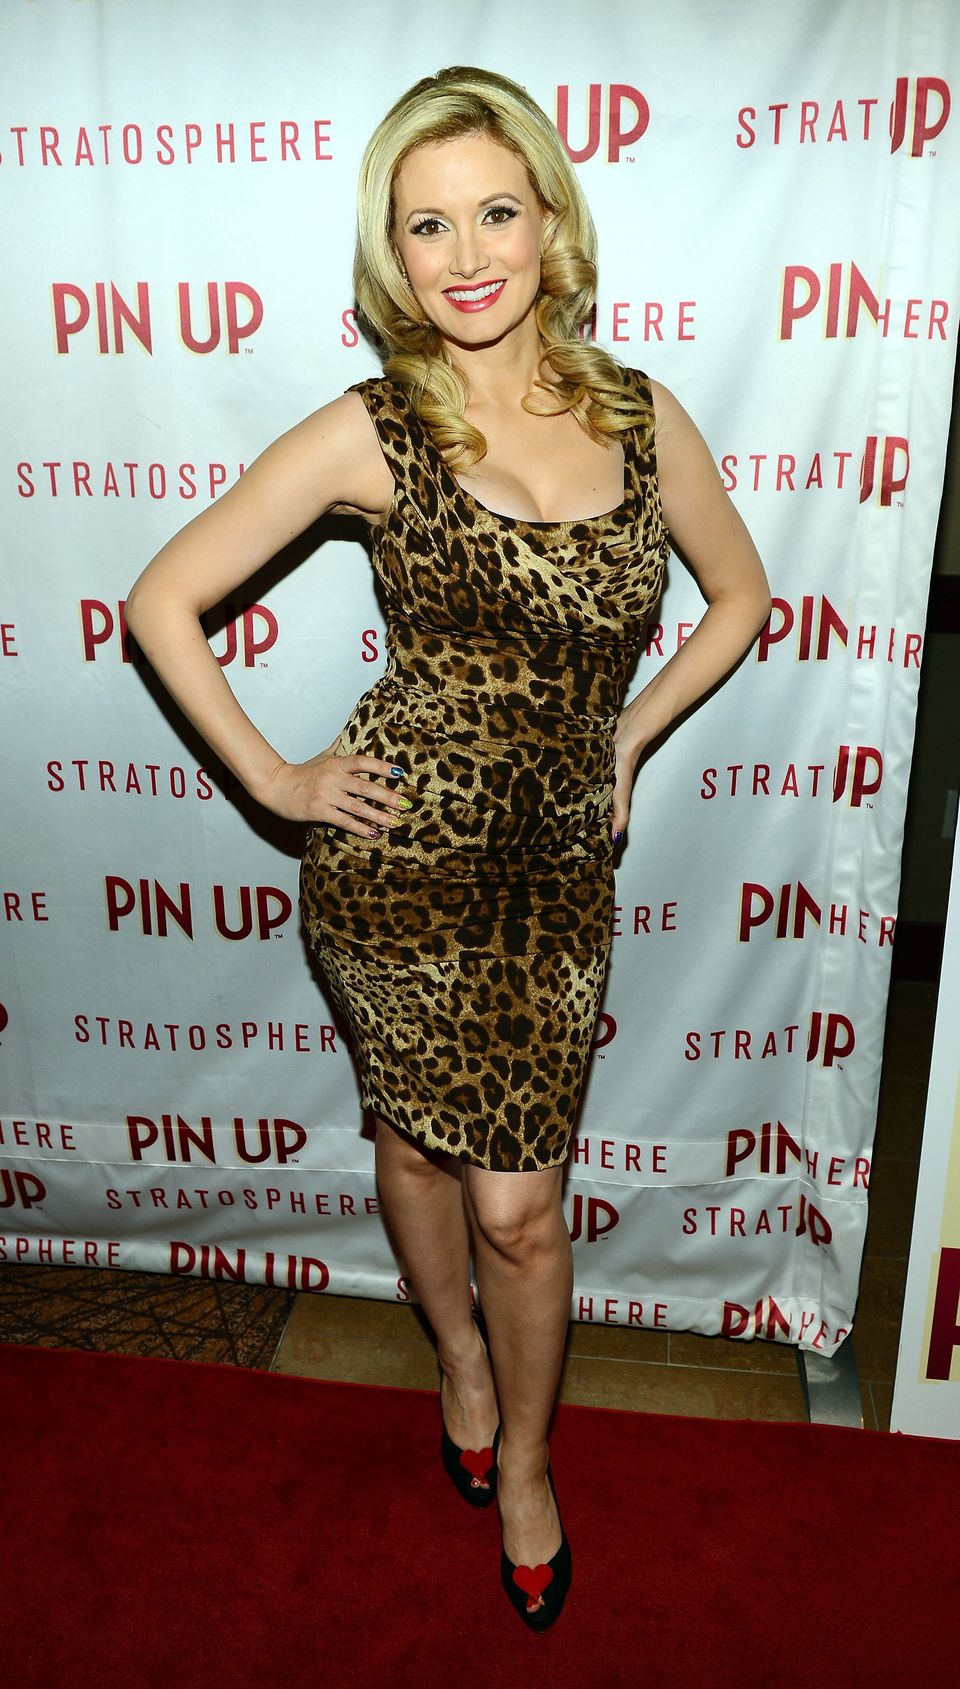 Model and television personality Holly Madison arrives at the premiere of the show 'Pin Up' at the Stratosphere Casino Hotel